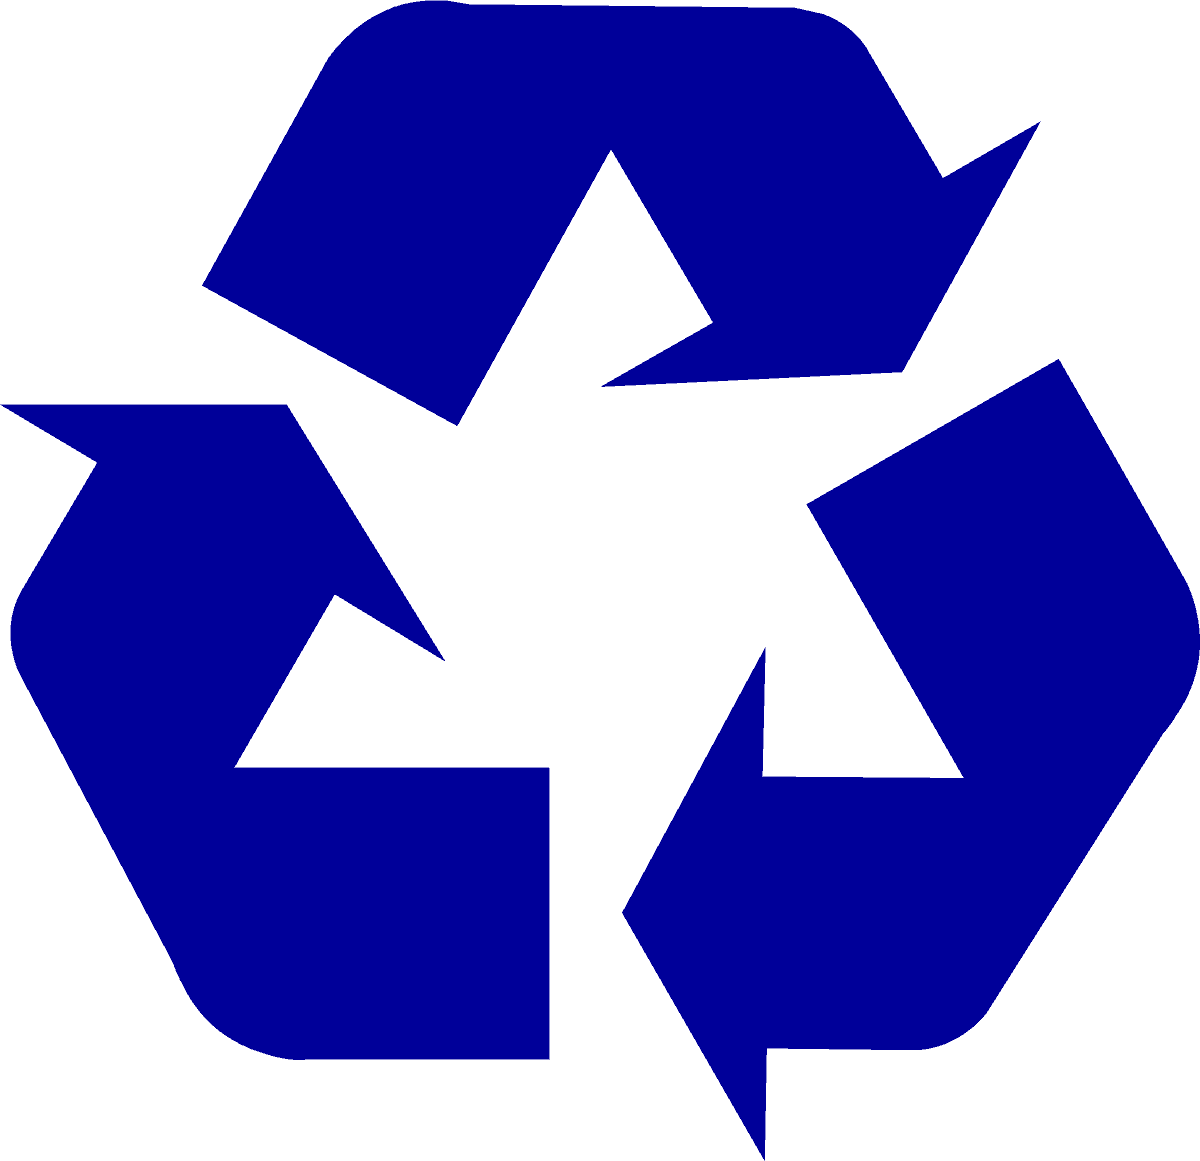 image regarding Recycling Sign Printable identified as Recycling Emblem - Down load the First Recycle Emblem